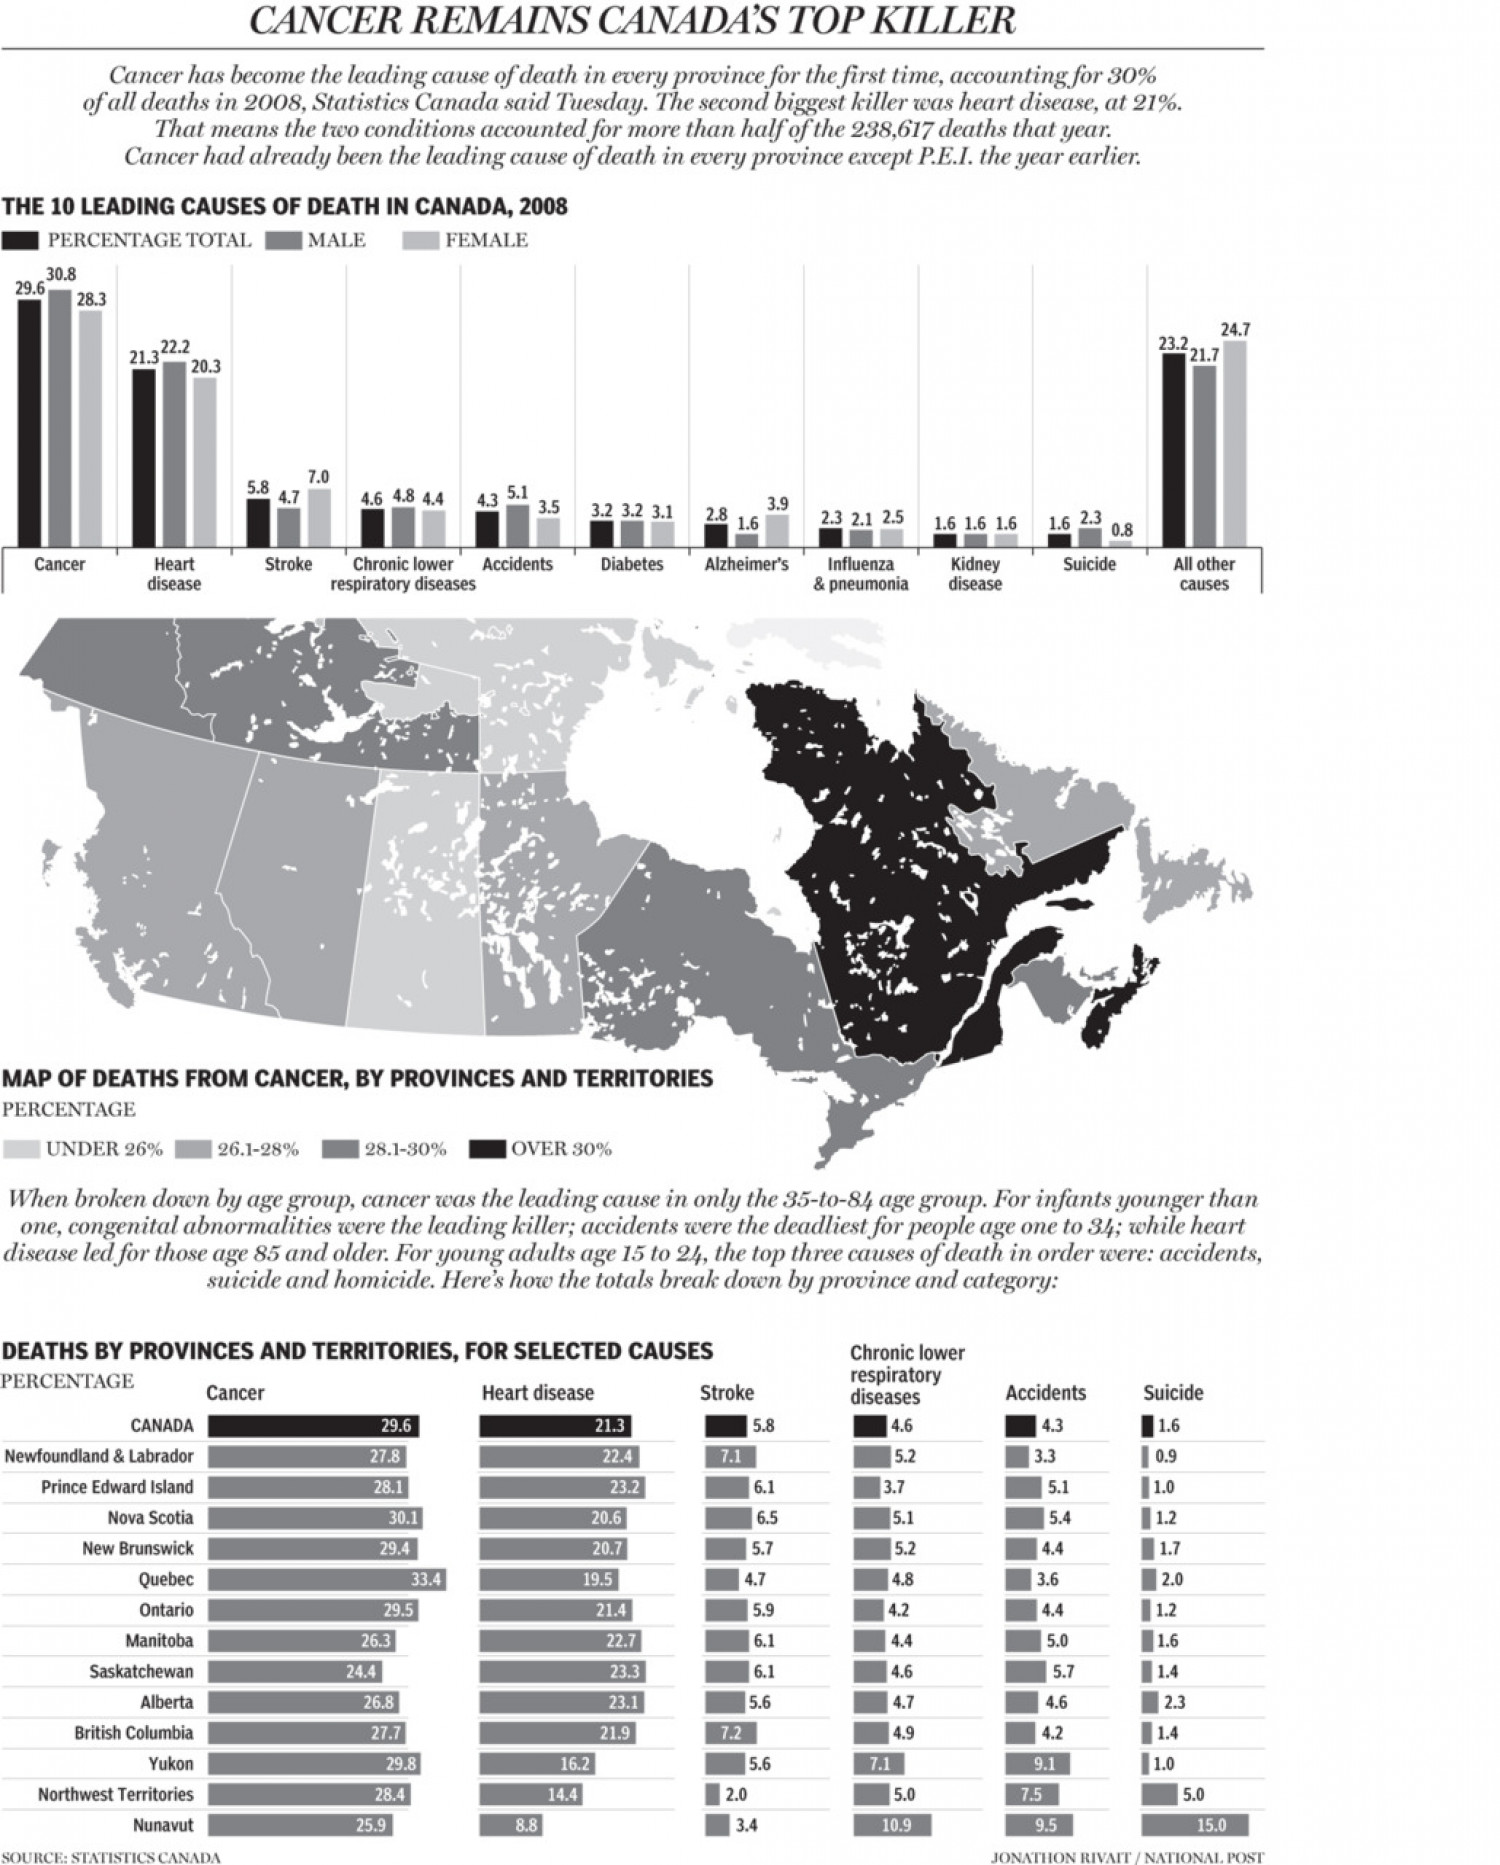 Cancer Remains Canada's Top Killer Infographic